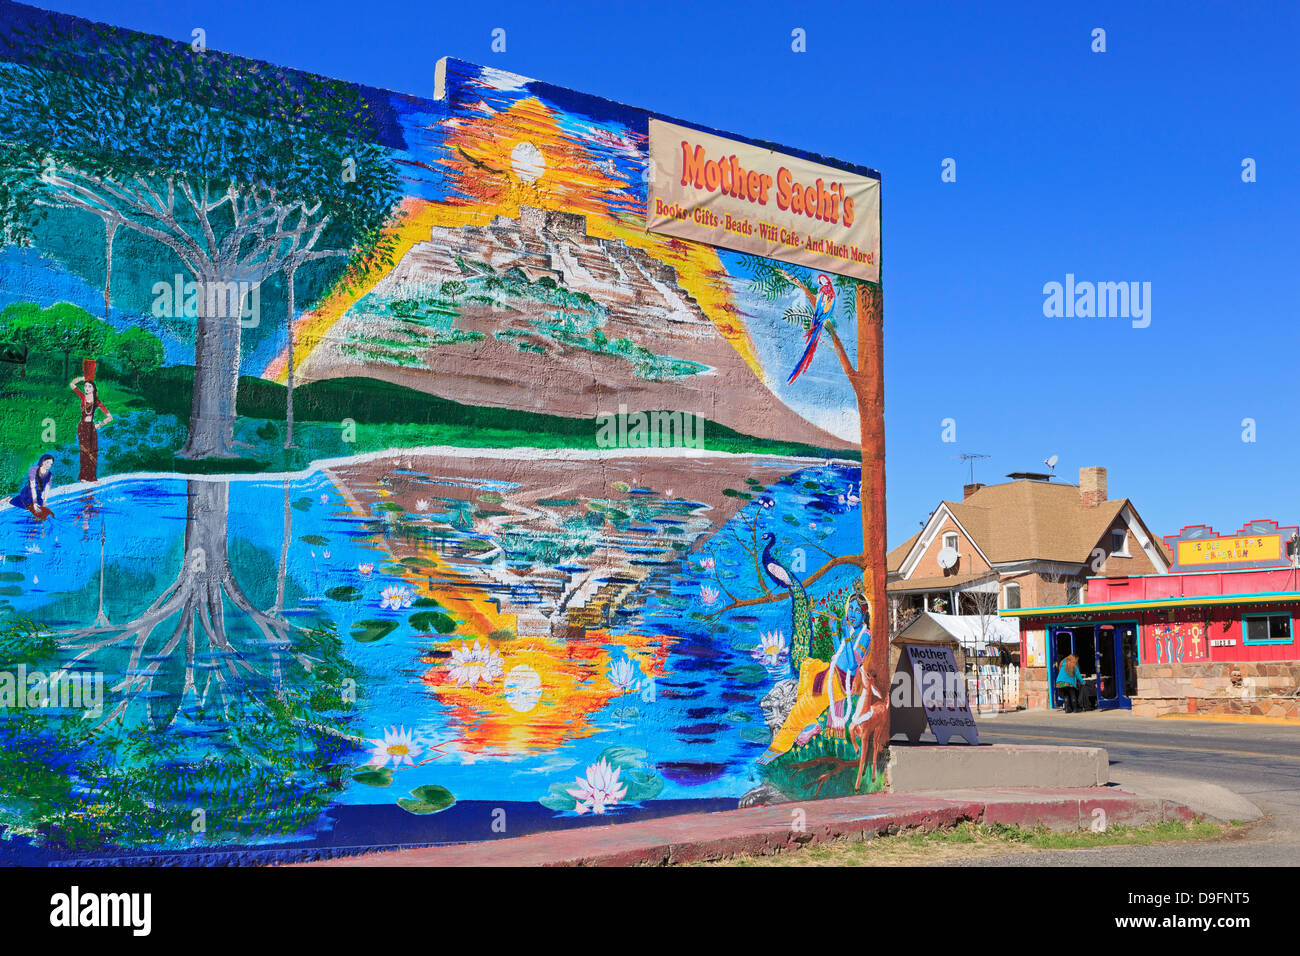 Store mural in Old Town Cottonwood, Arizona, USA - Stock Image